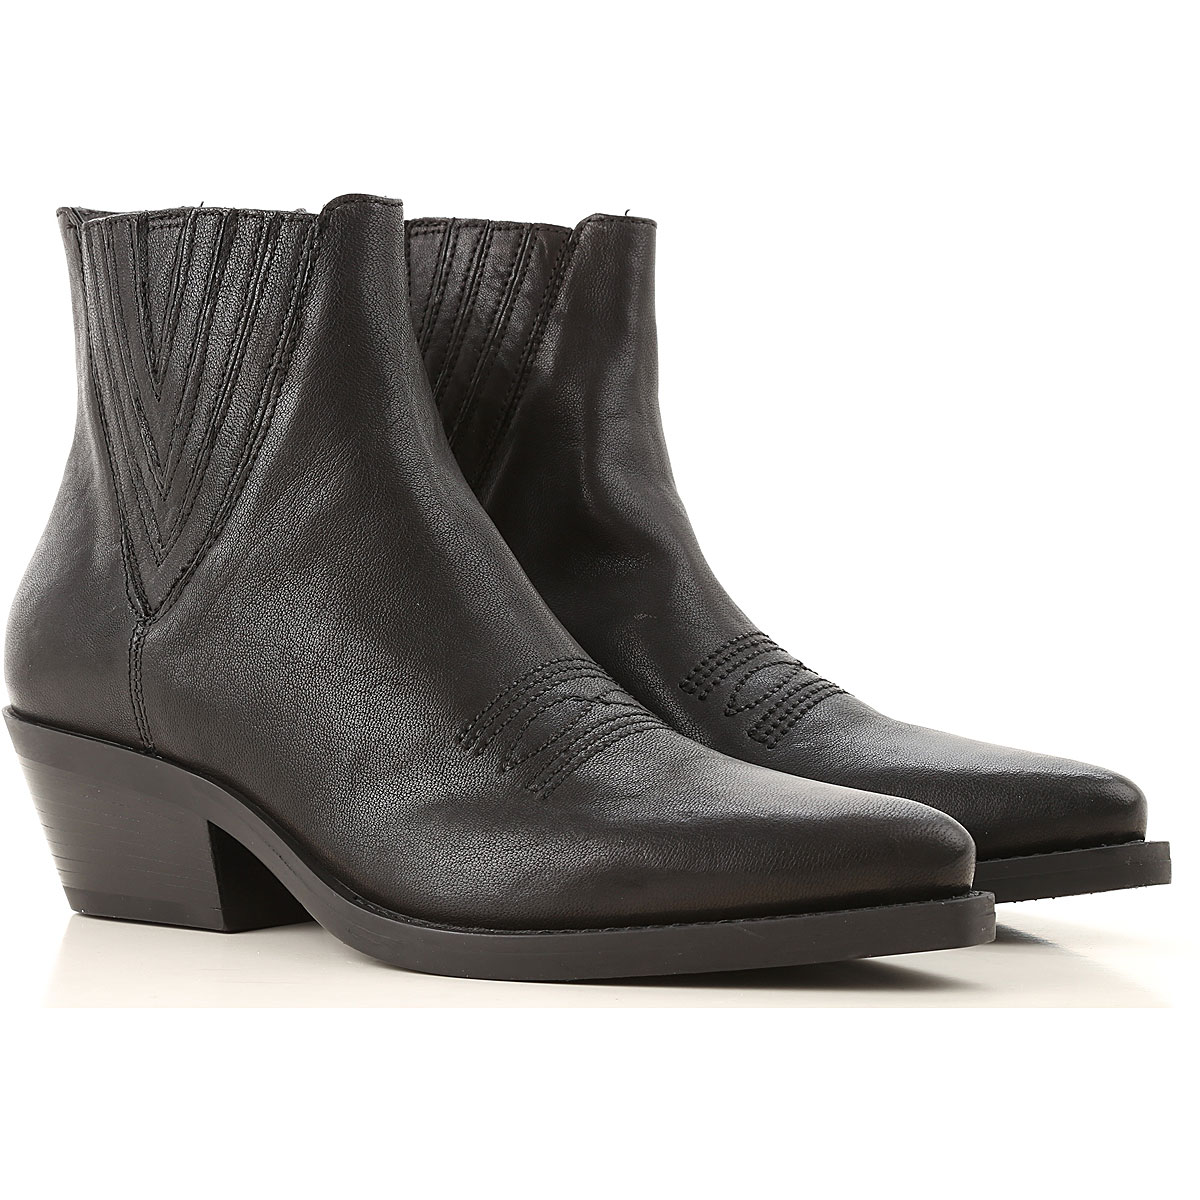 Janet & Janet Boots for Women, Booties On Sale, Black, Leather, 2019, 10 6 7